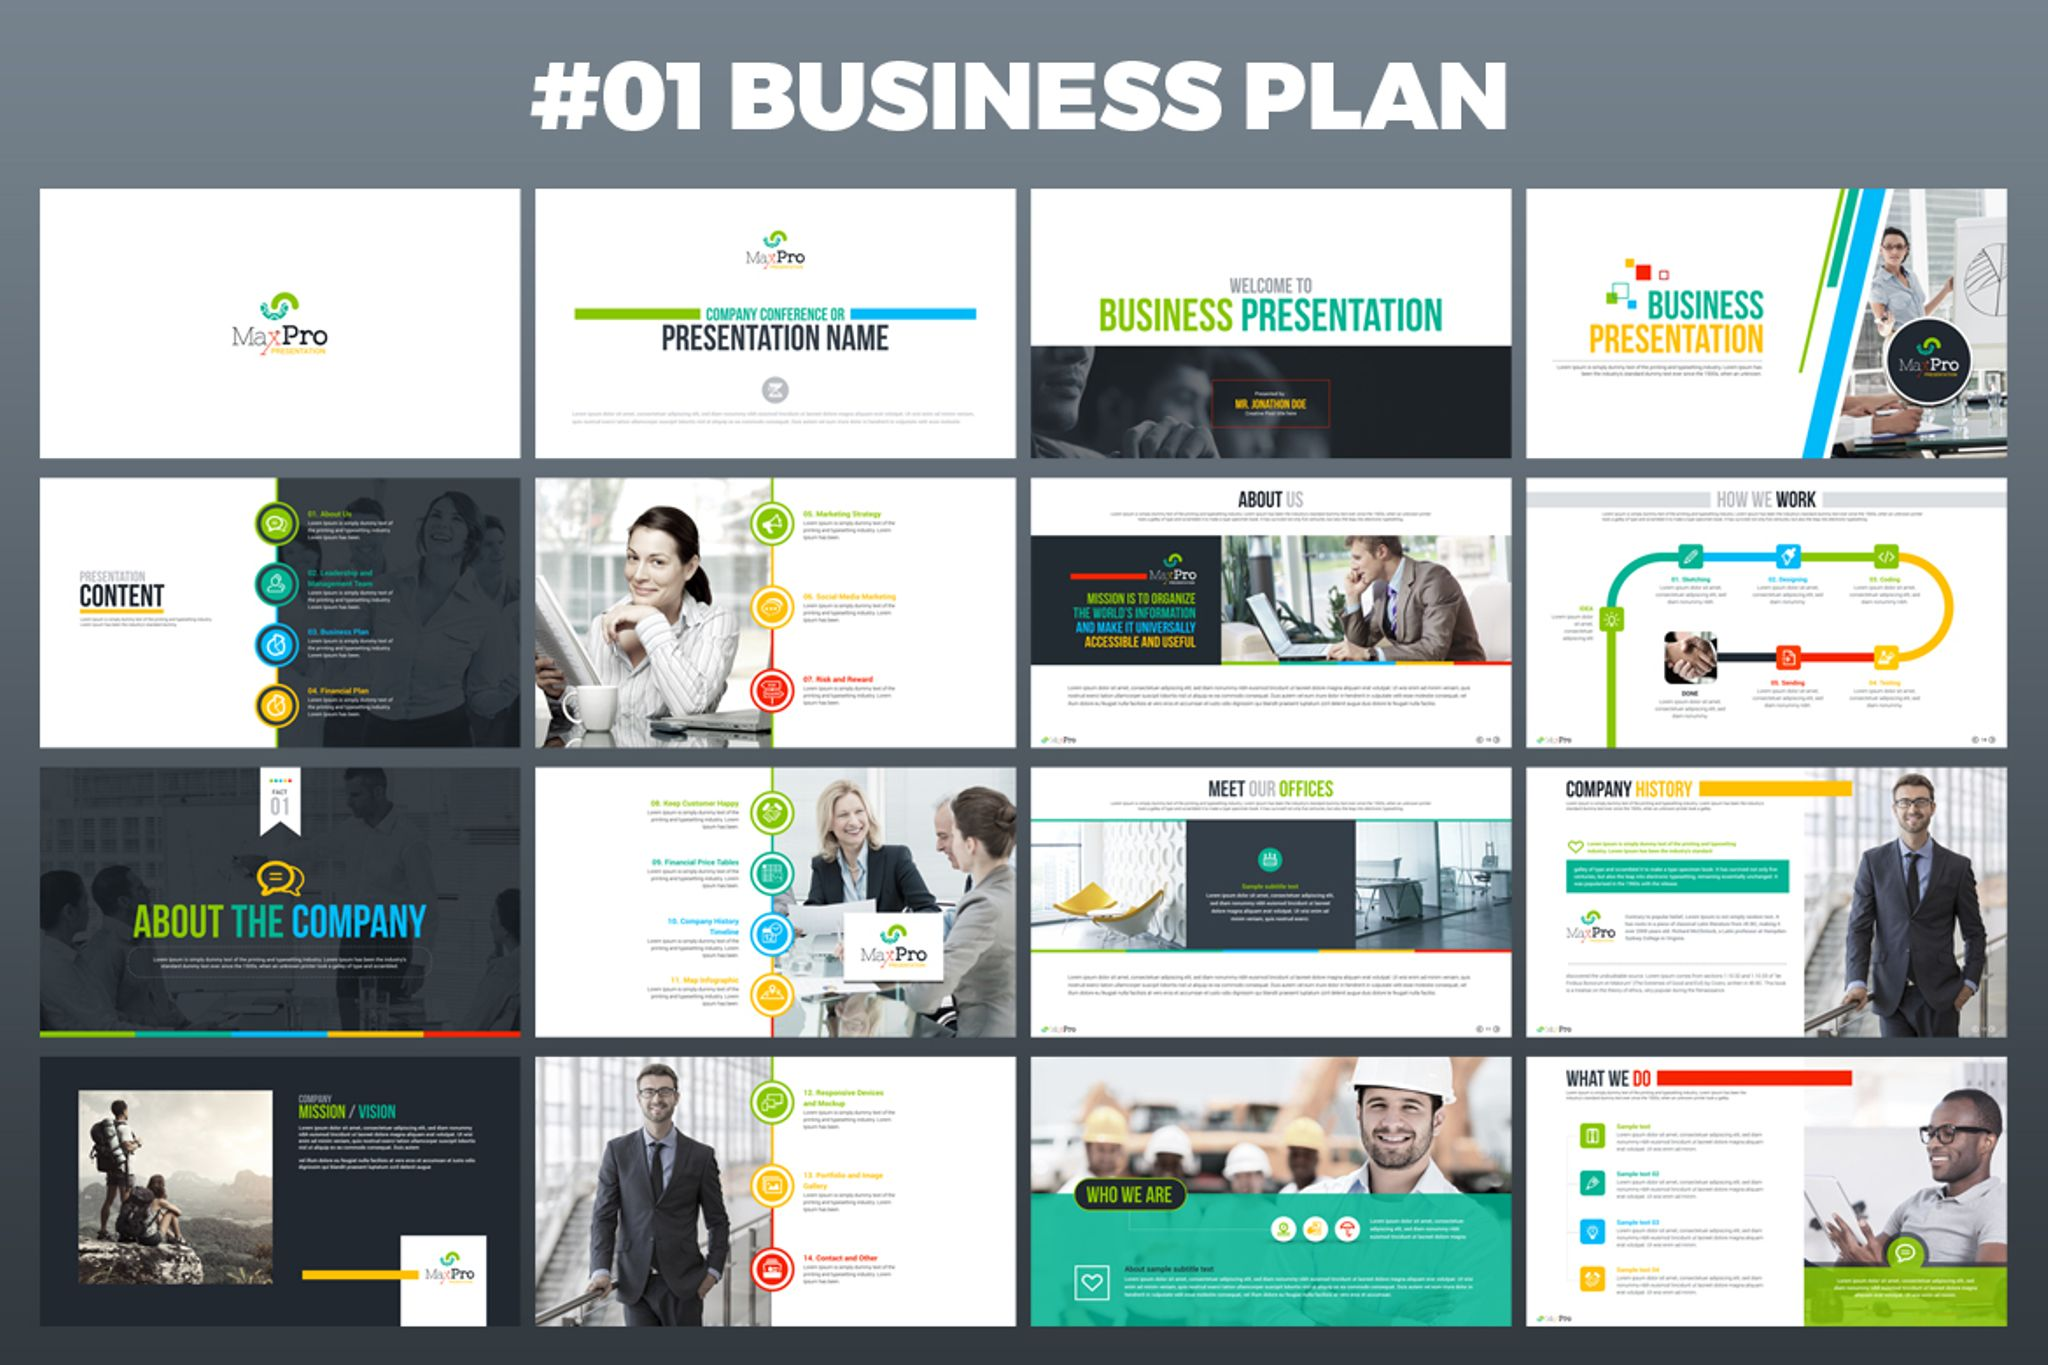 Maxpro business plan powerpoint template 66751 maxpro business plan powerpoint template big screenshot wajeb